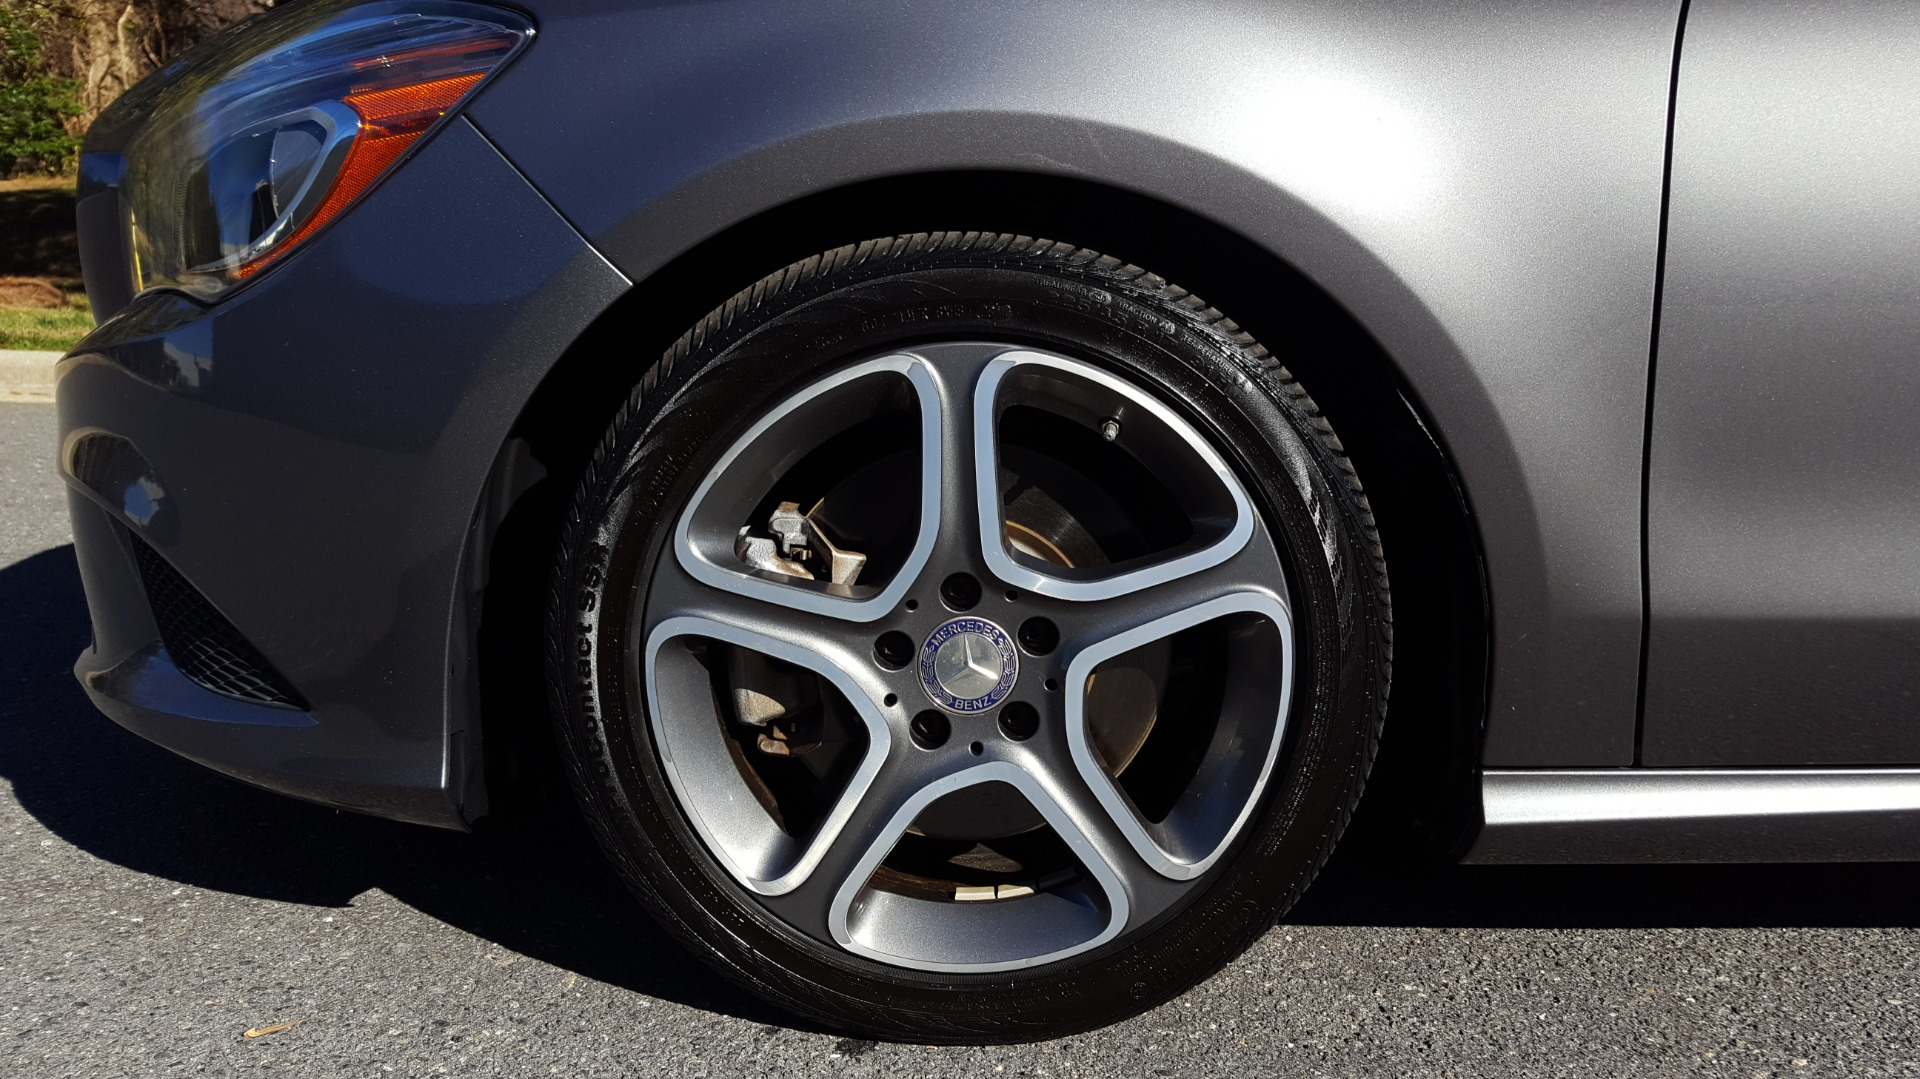 Used 2014 Mercedes-Benz CLA-CLASS CLA 250 / NAV / PANO-ROOF / BLIND SPOT ASSIST / XENON HEADLIGHTS for sale $19,995 at Formula Imports in Charlotte NC 28227 66